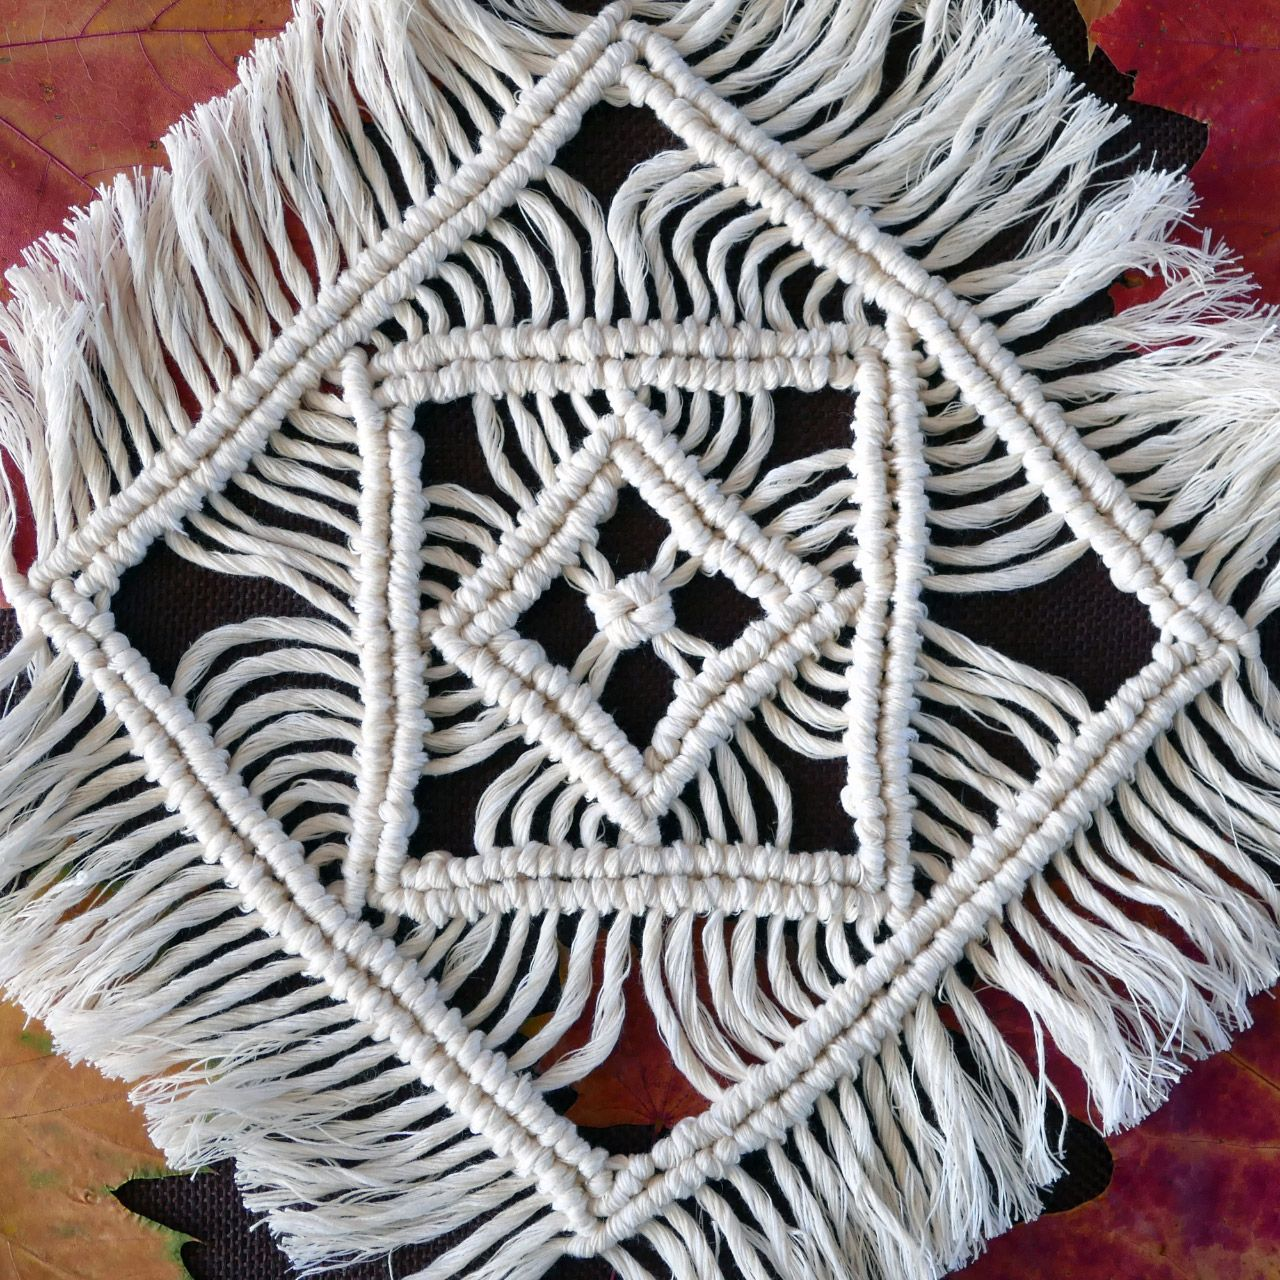 Macrame Tablecloth Tutorial